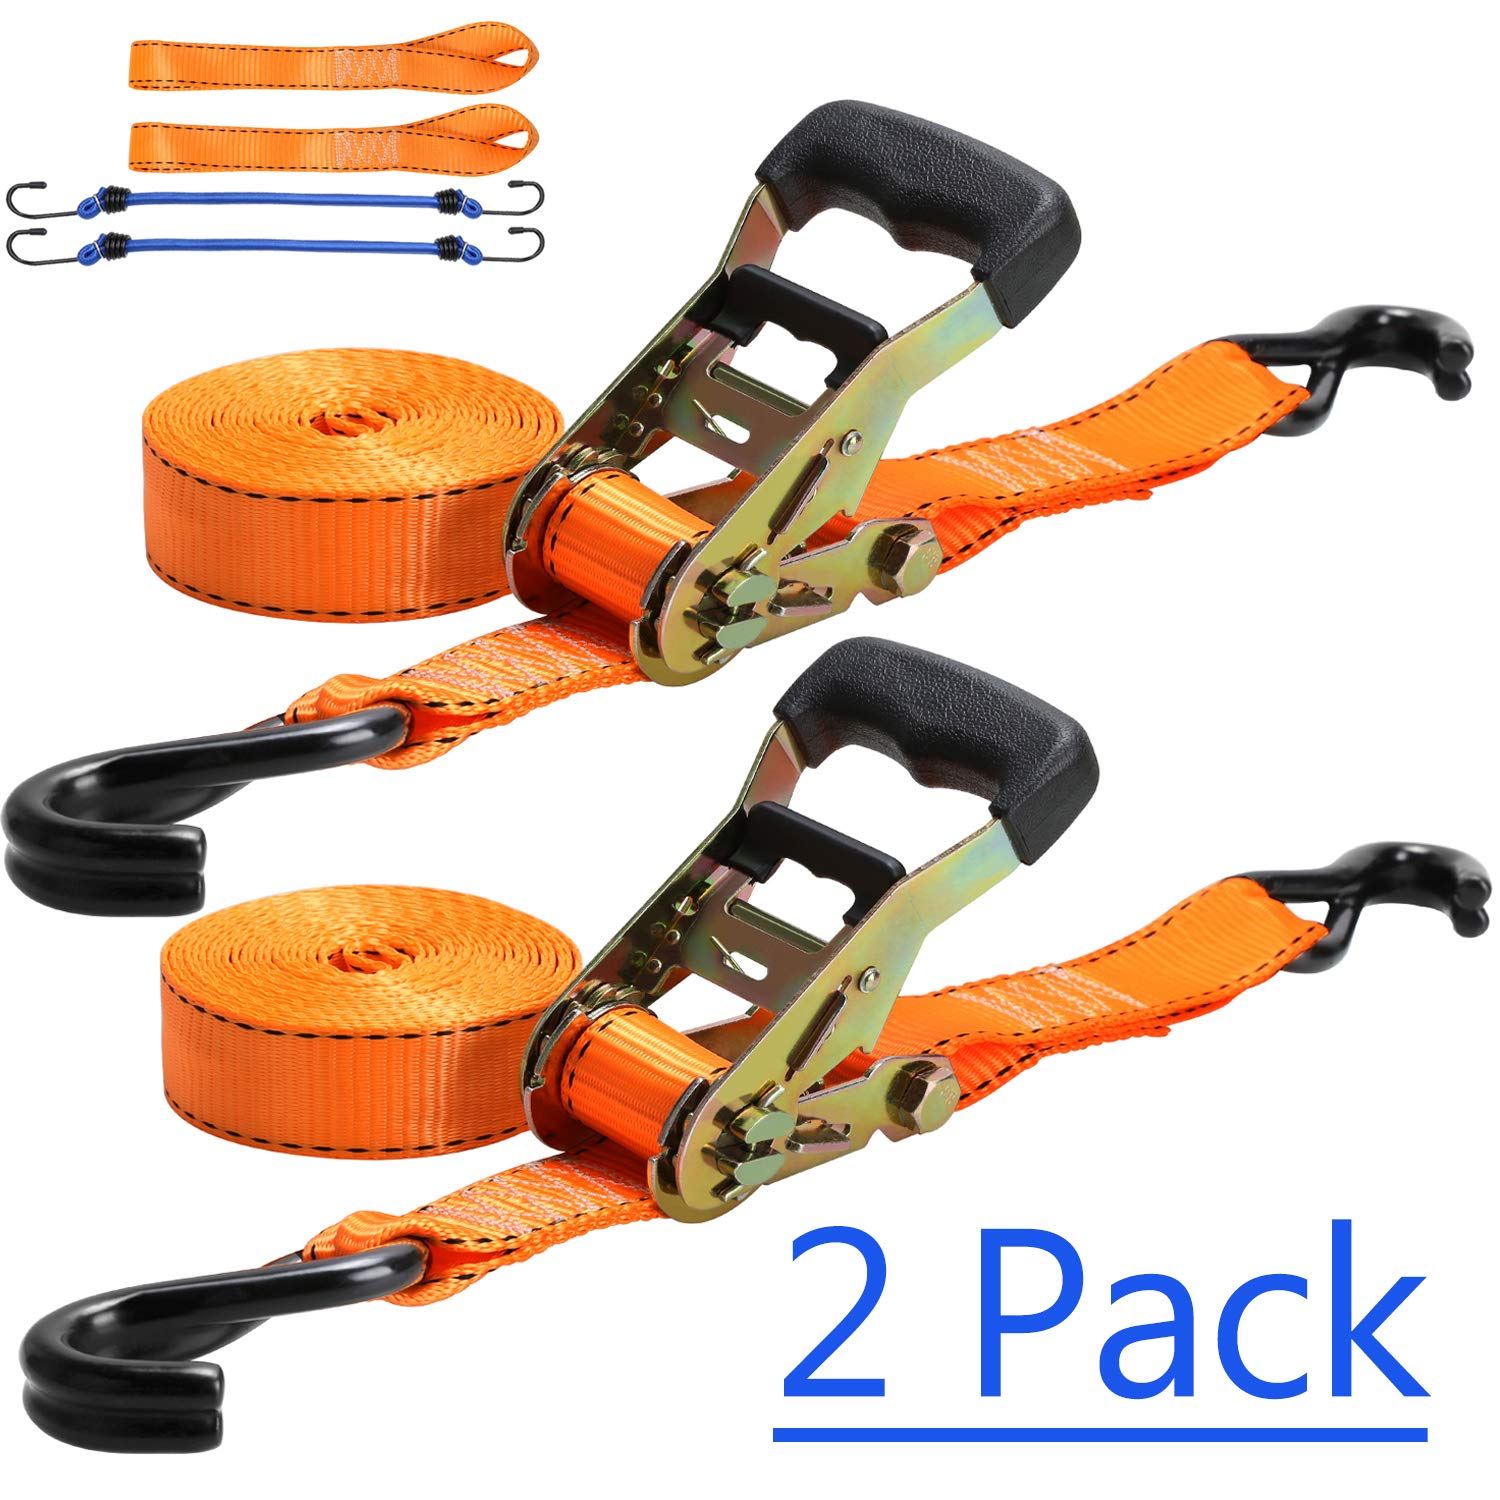 Trekassy Ratchet Tie Down Straps 5,400lbs Break Strength, 2pk 8ft Heavy Duty Cargo Securing Straps with Free Soft Loop for Lawn Equipment, Moving Appliances, Motorcycle by Trekassy